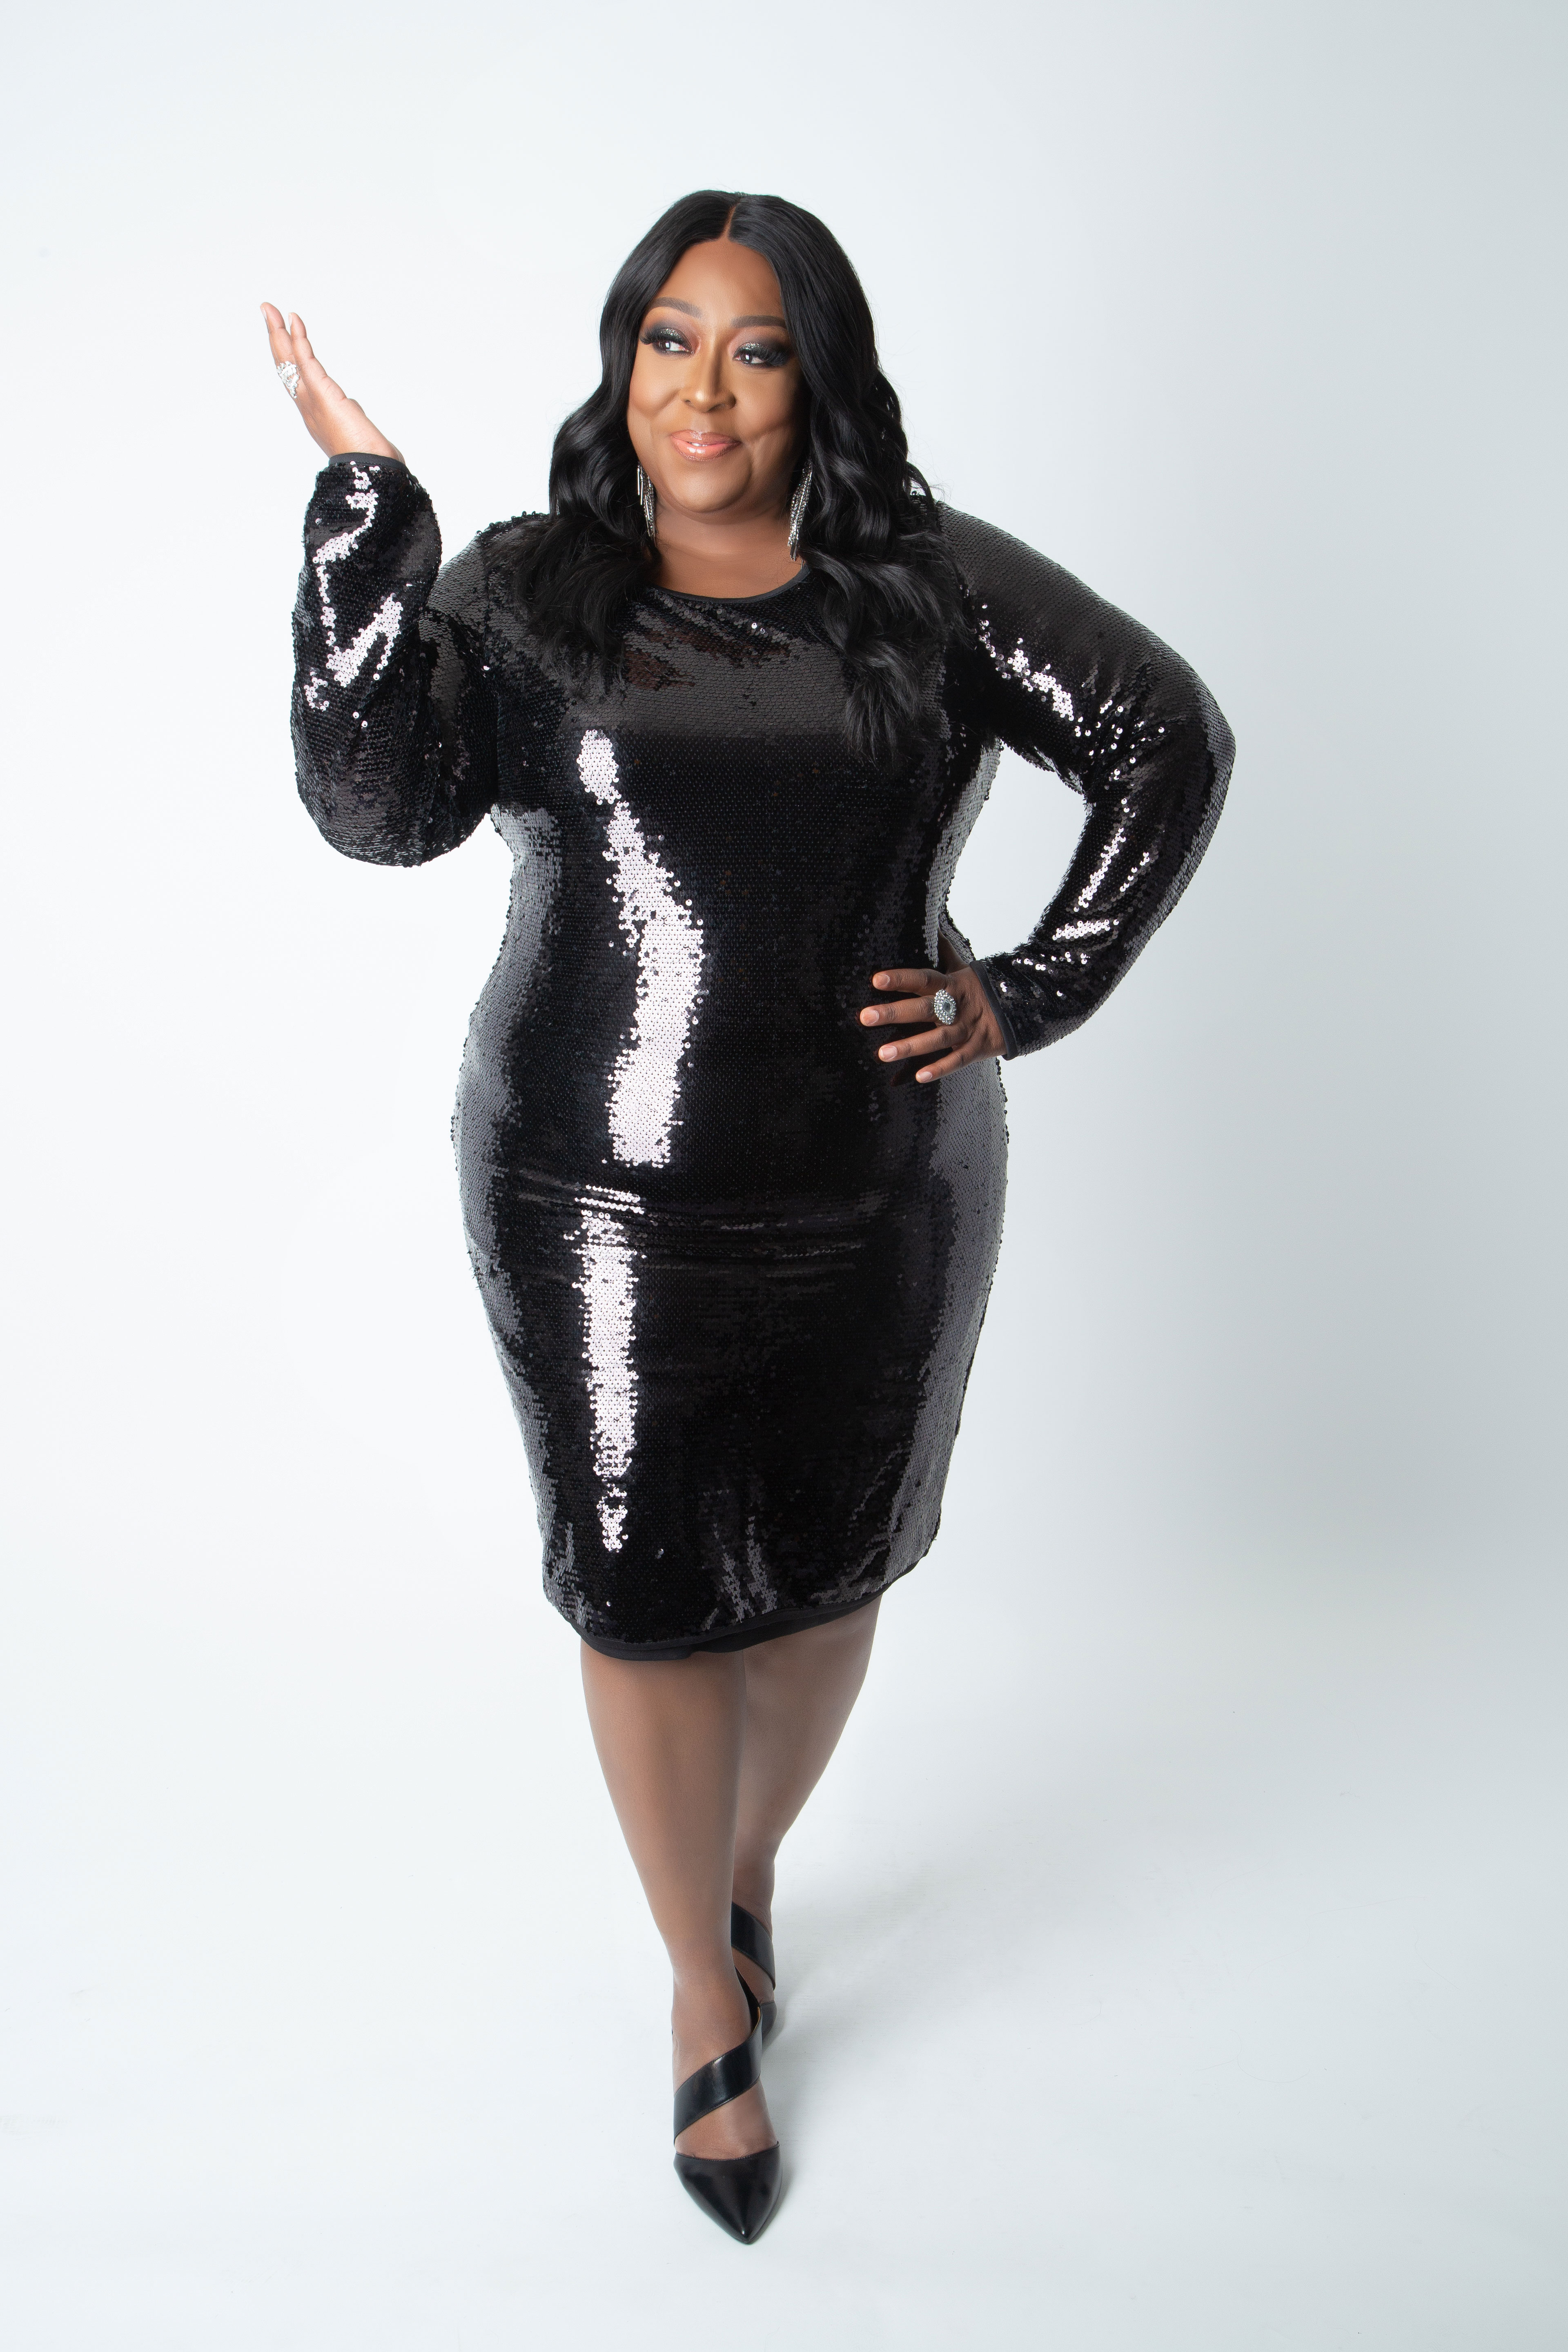 Ashley Stewart x Loni Love Holiday Collection